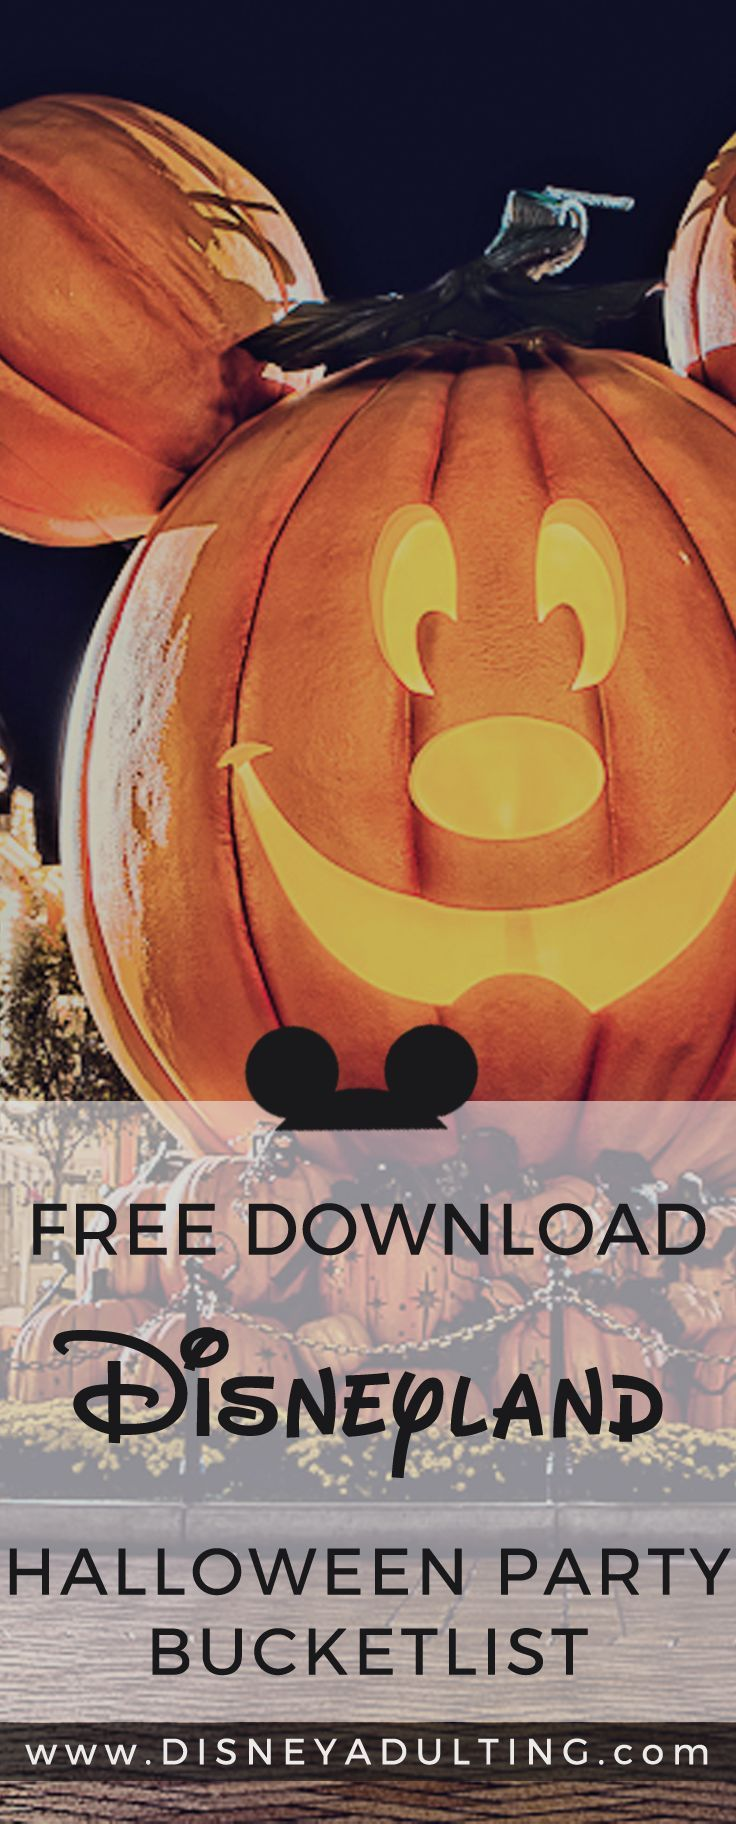 "[Free Download] The Ultimate Disneyland Halloween Bucket List | Don't miss out on a single ""must-do"" at Mickey's Halloween Party this year by downloading your personal bucket list to Disneyland Halloween fun."